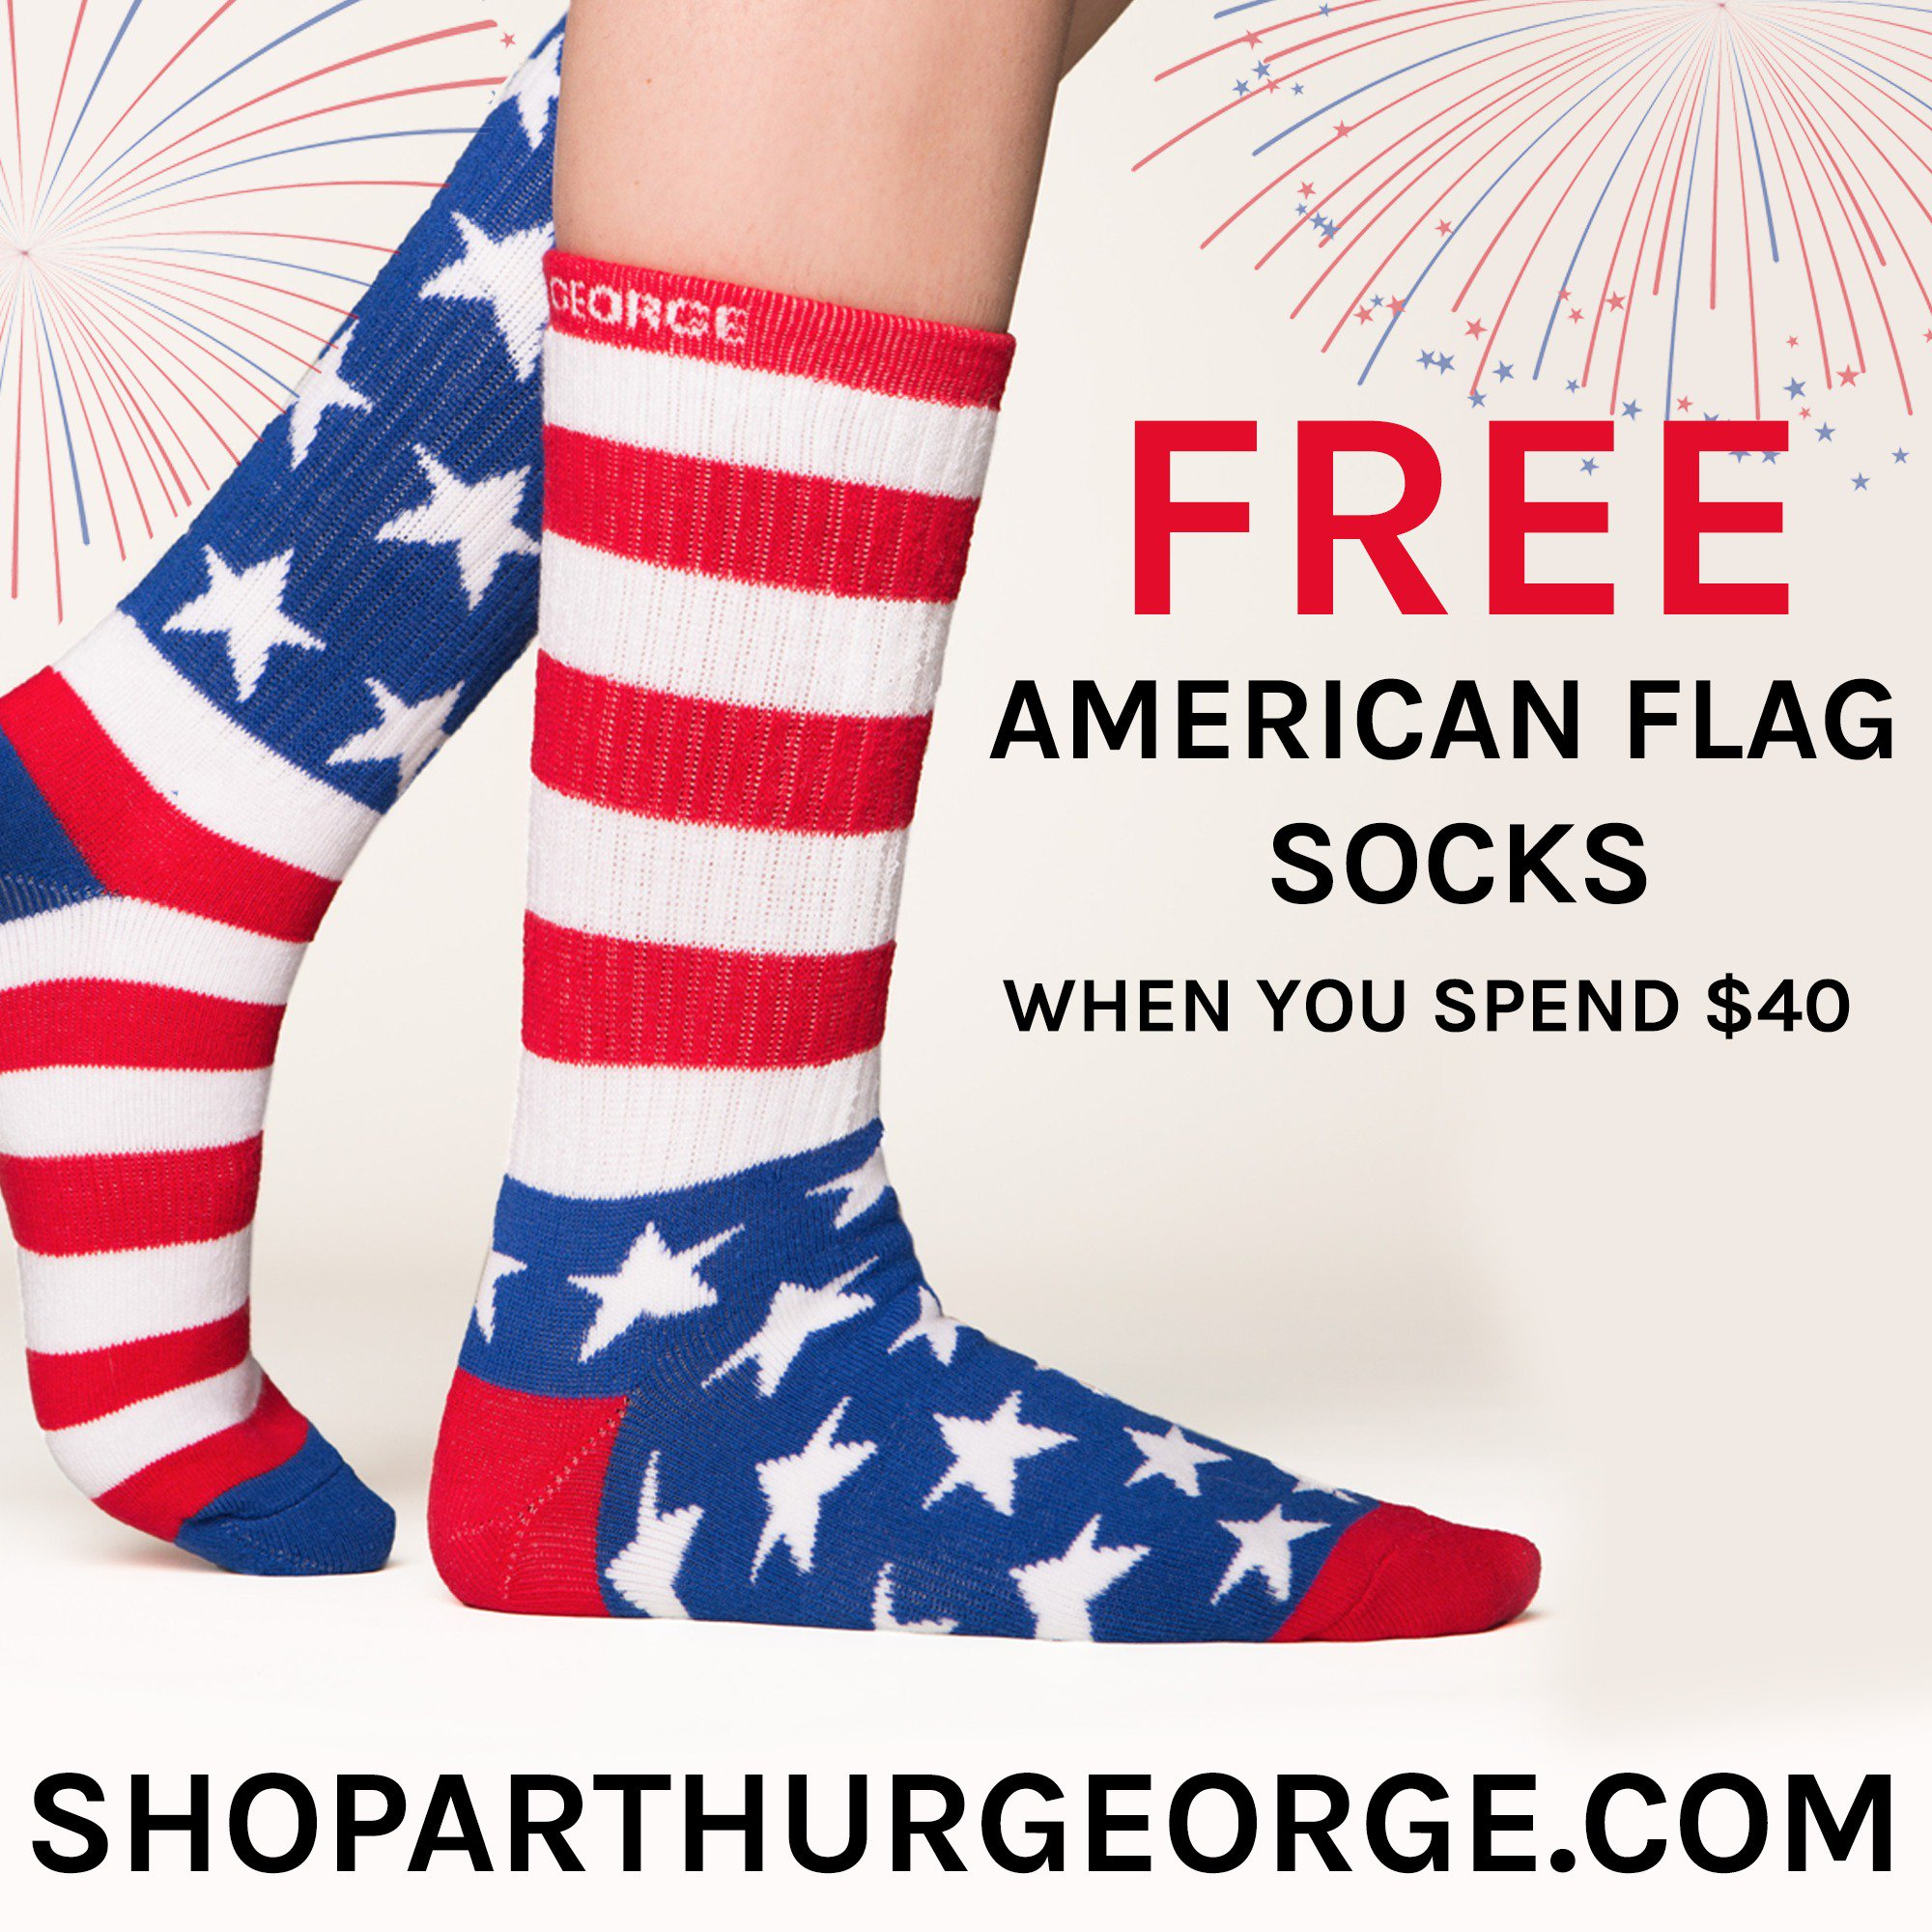 Get your FREE @arthurgeorge socks for Fourth of July!! https://t.co/FEeSGVVAAI https://t.co/FRBz19cjgt